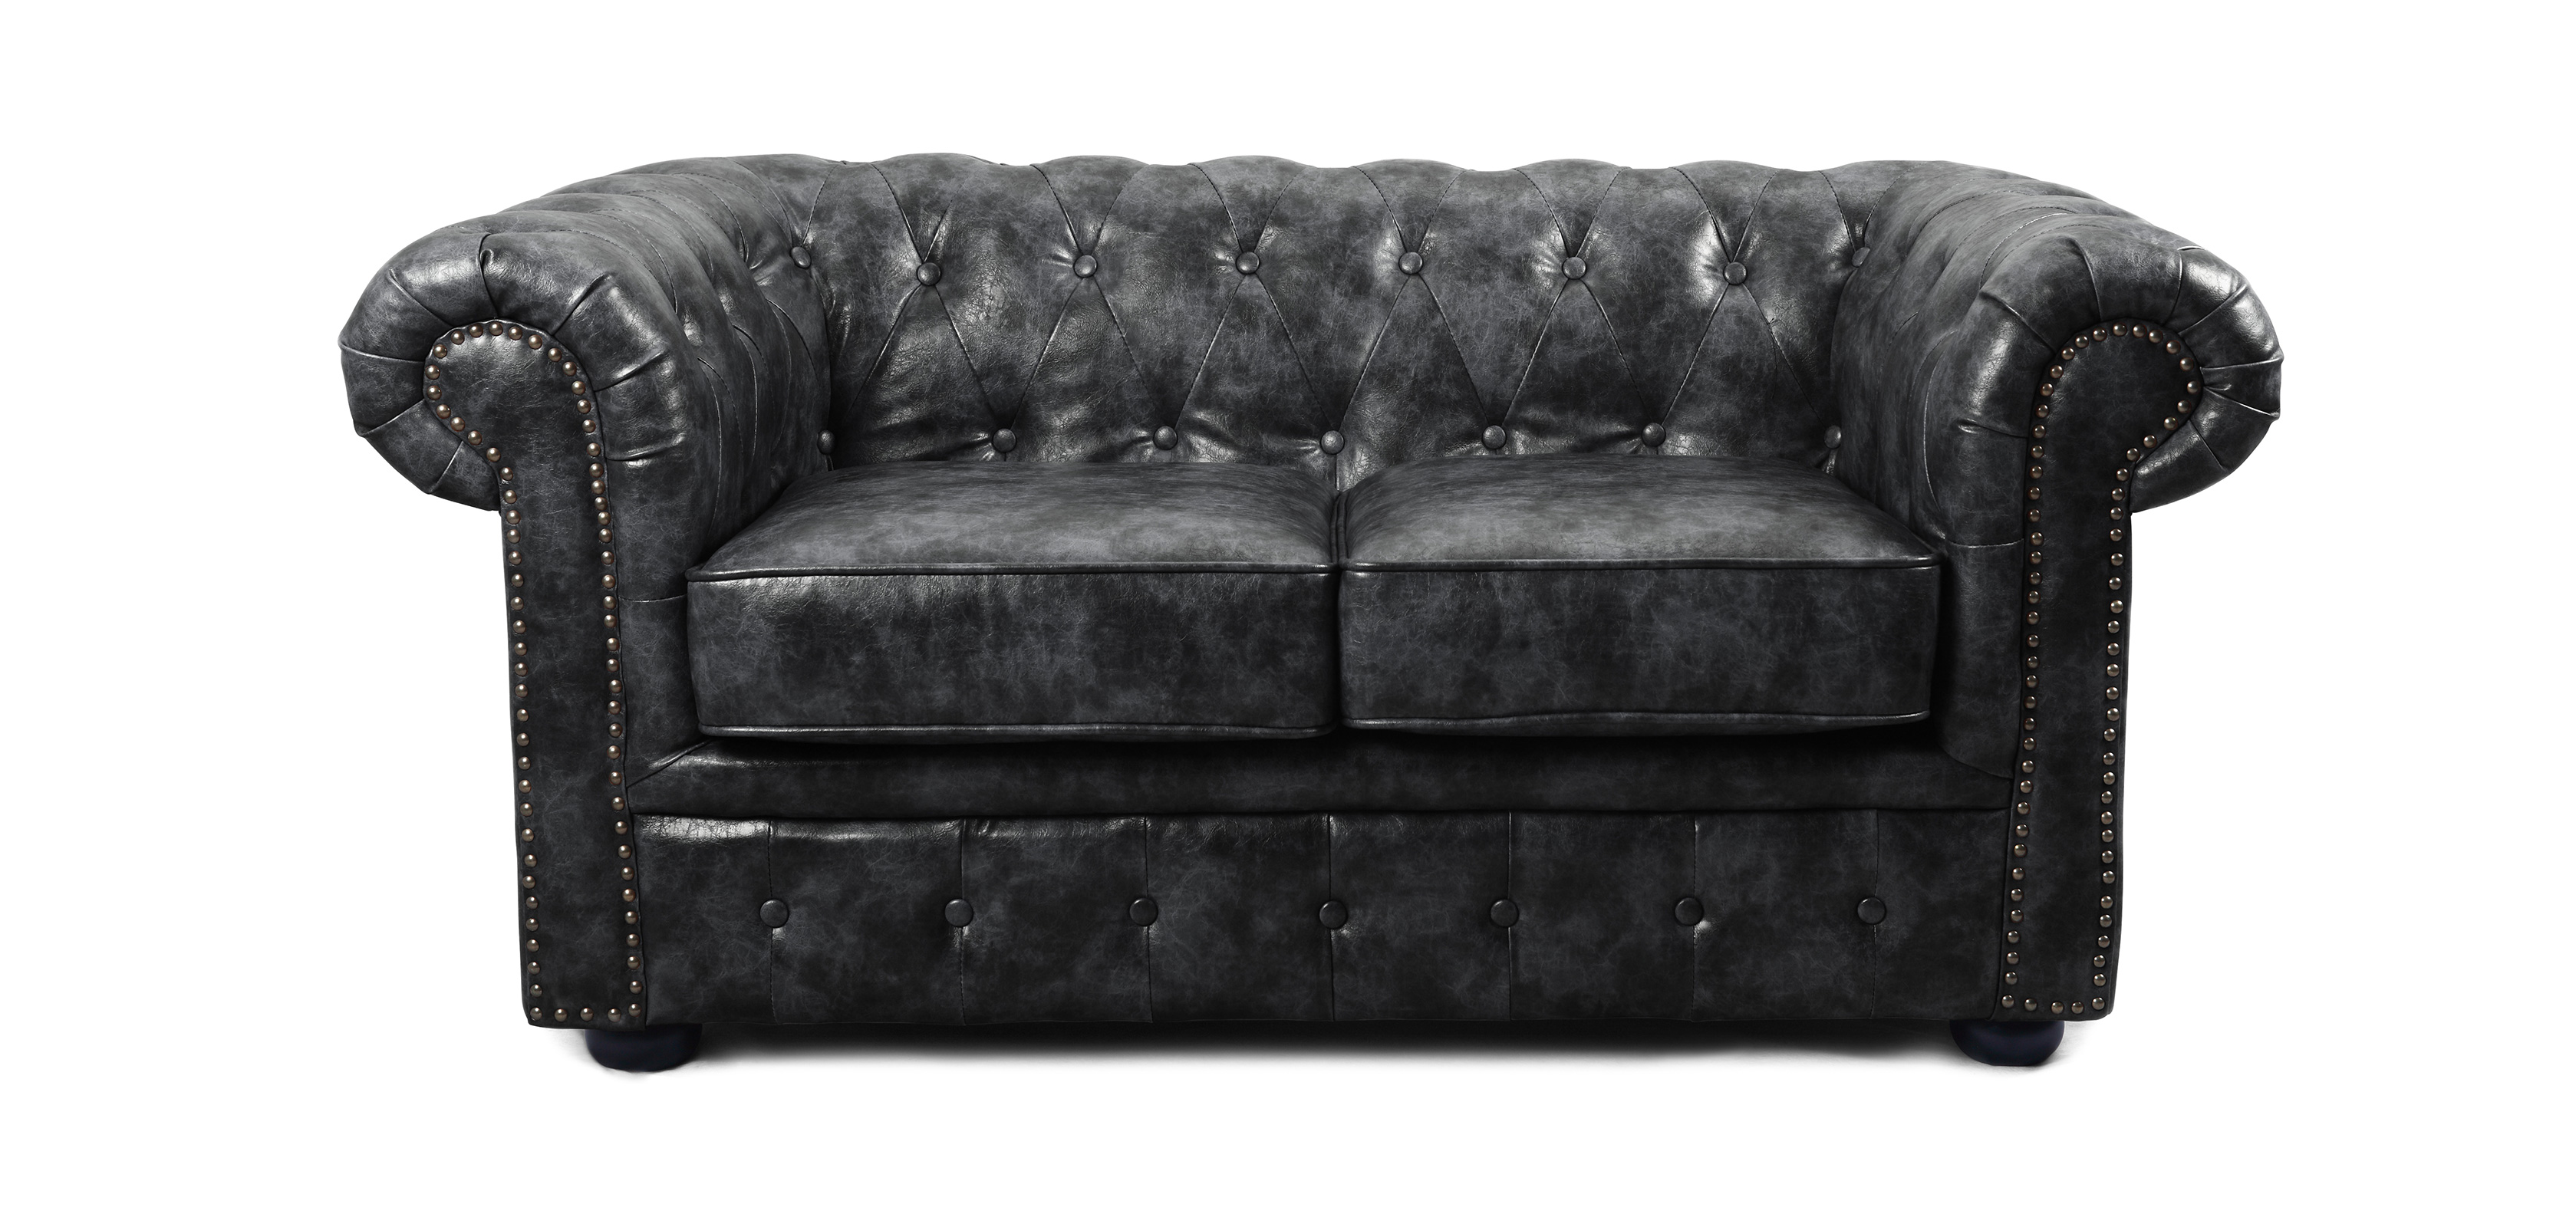 Canap chesterfield vintage 2 places cuir premium pas cher for Canape chesterfield cuir pas cher